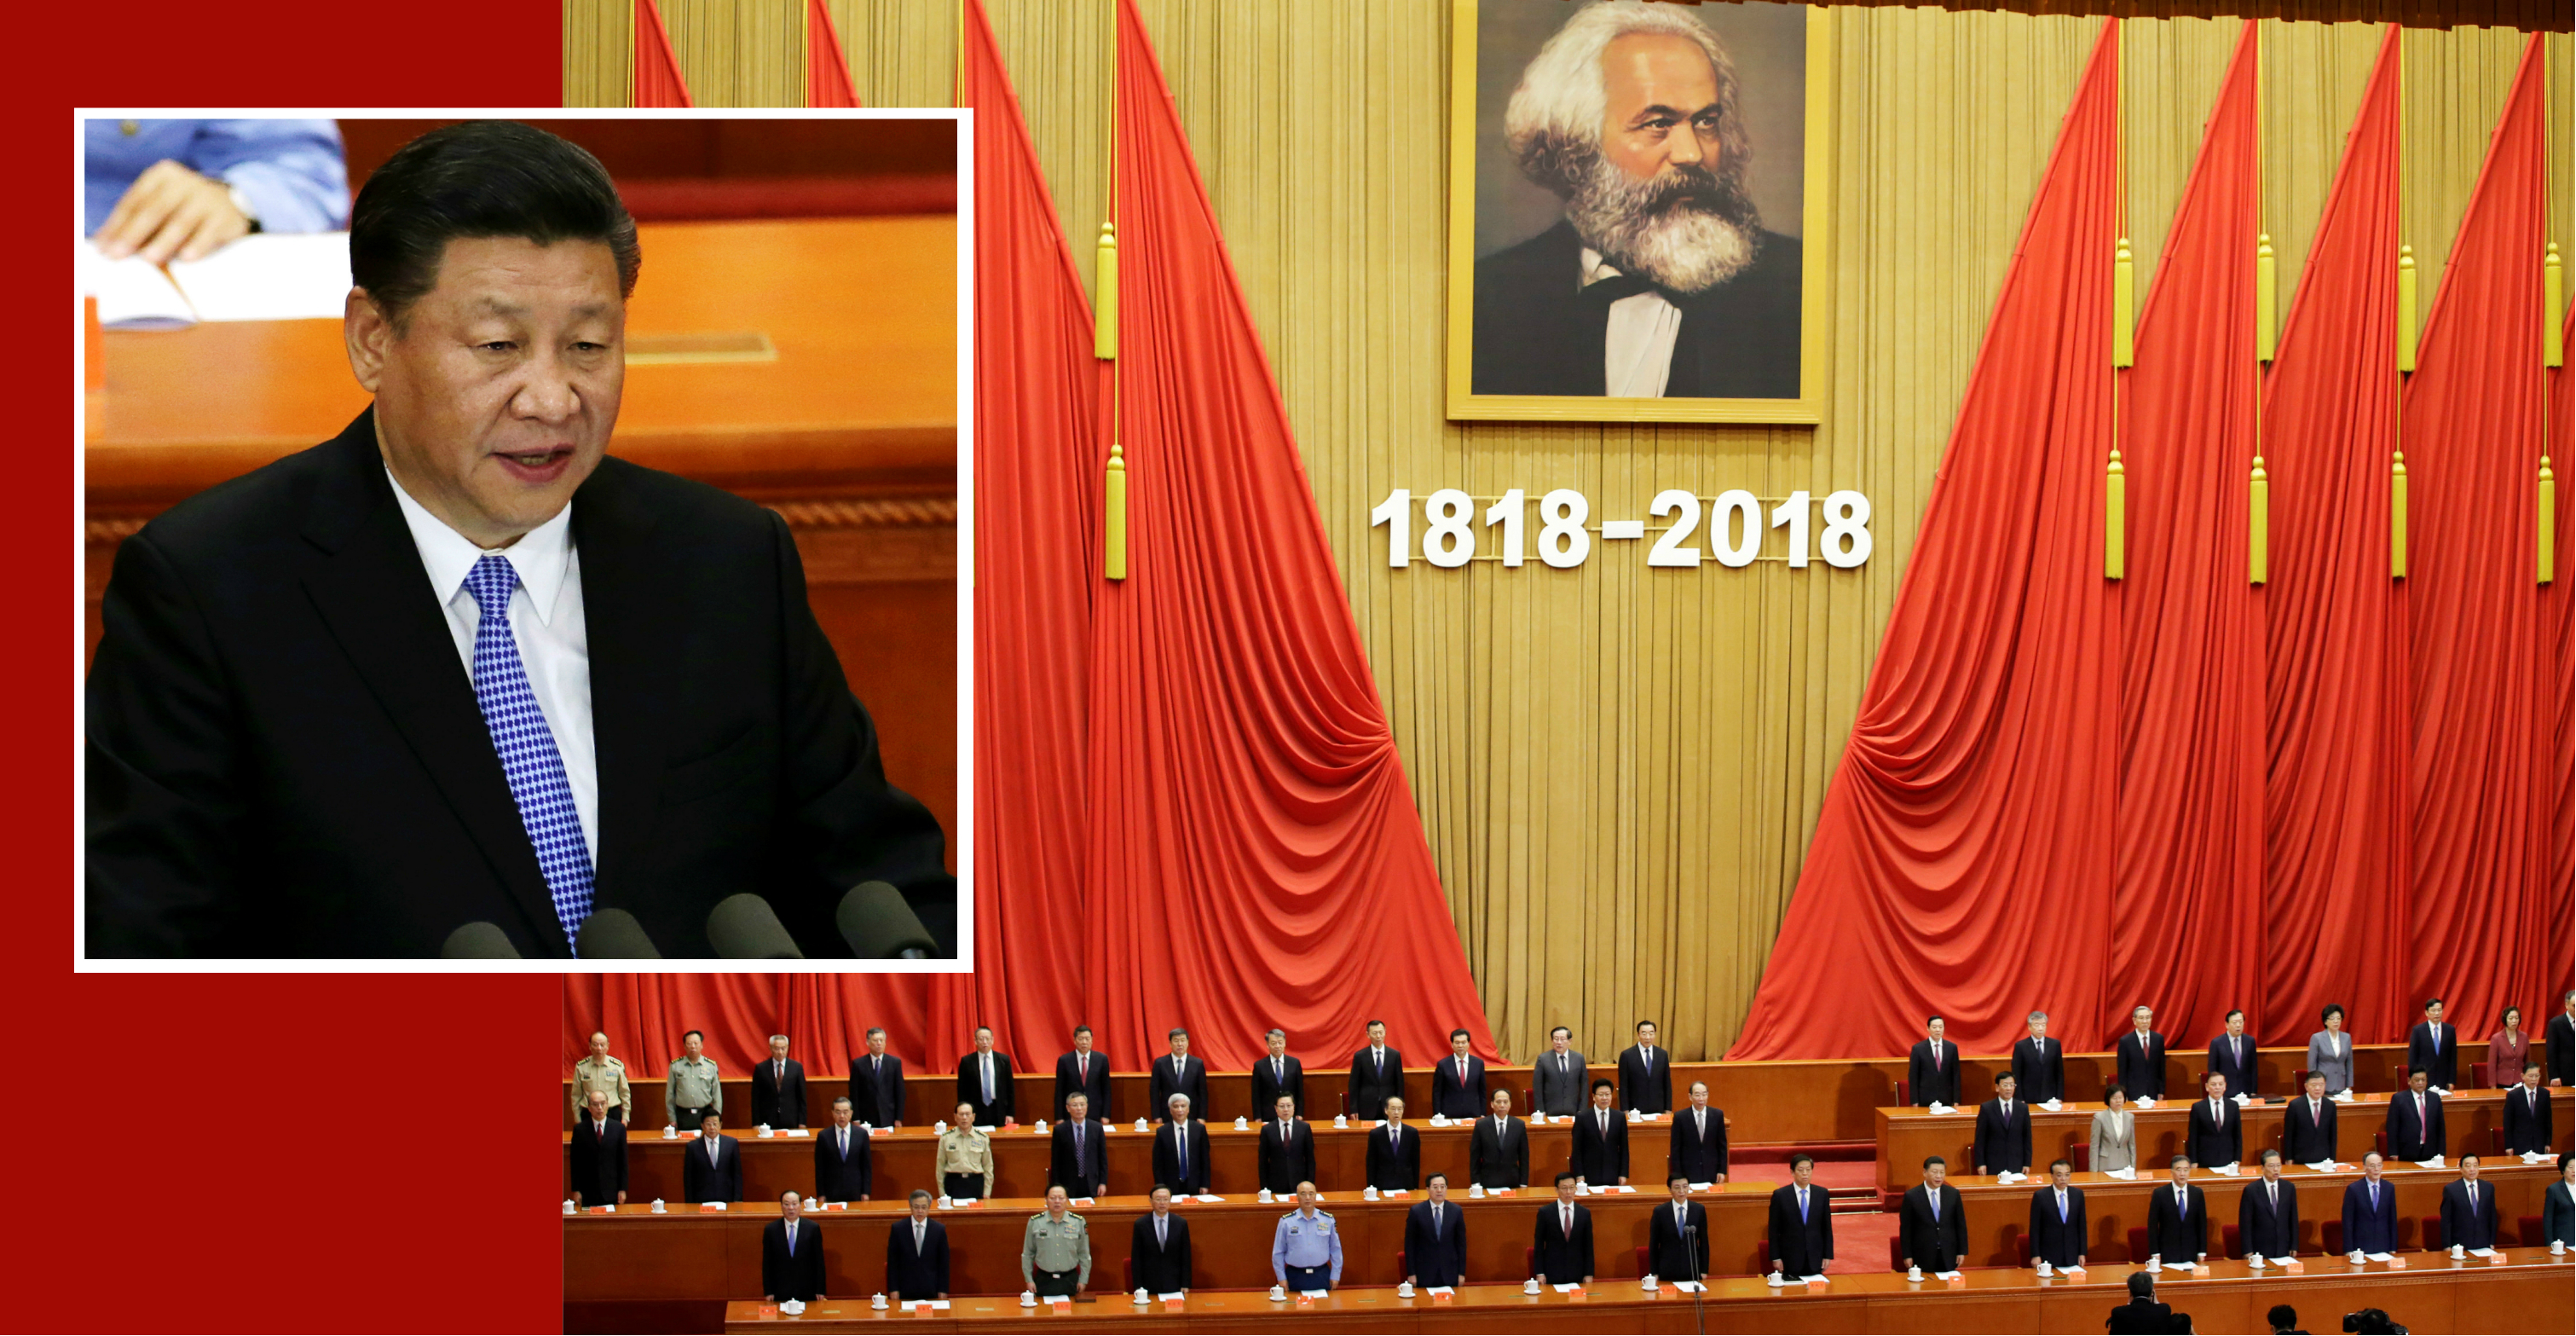 Chinese President Xi Jinping delivers a speech at an event commemorating the 200th birth anniversary of Karl Marx, in Beijing on Friday. Photo: Reuters